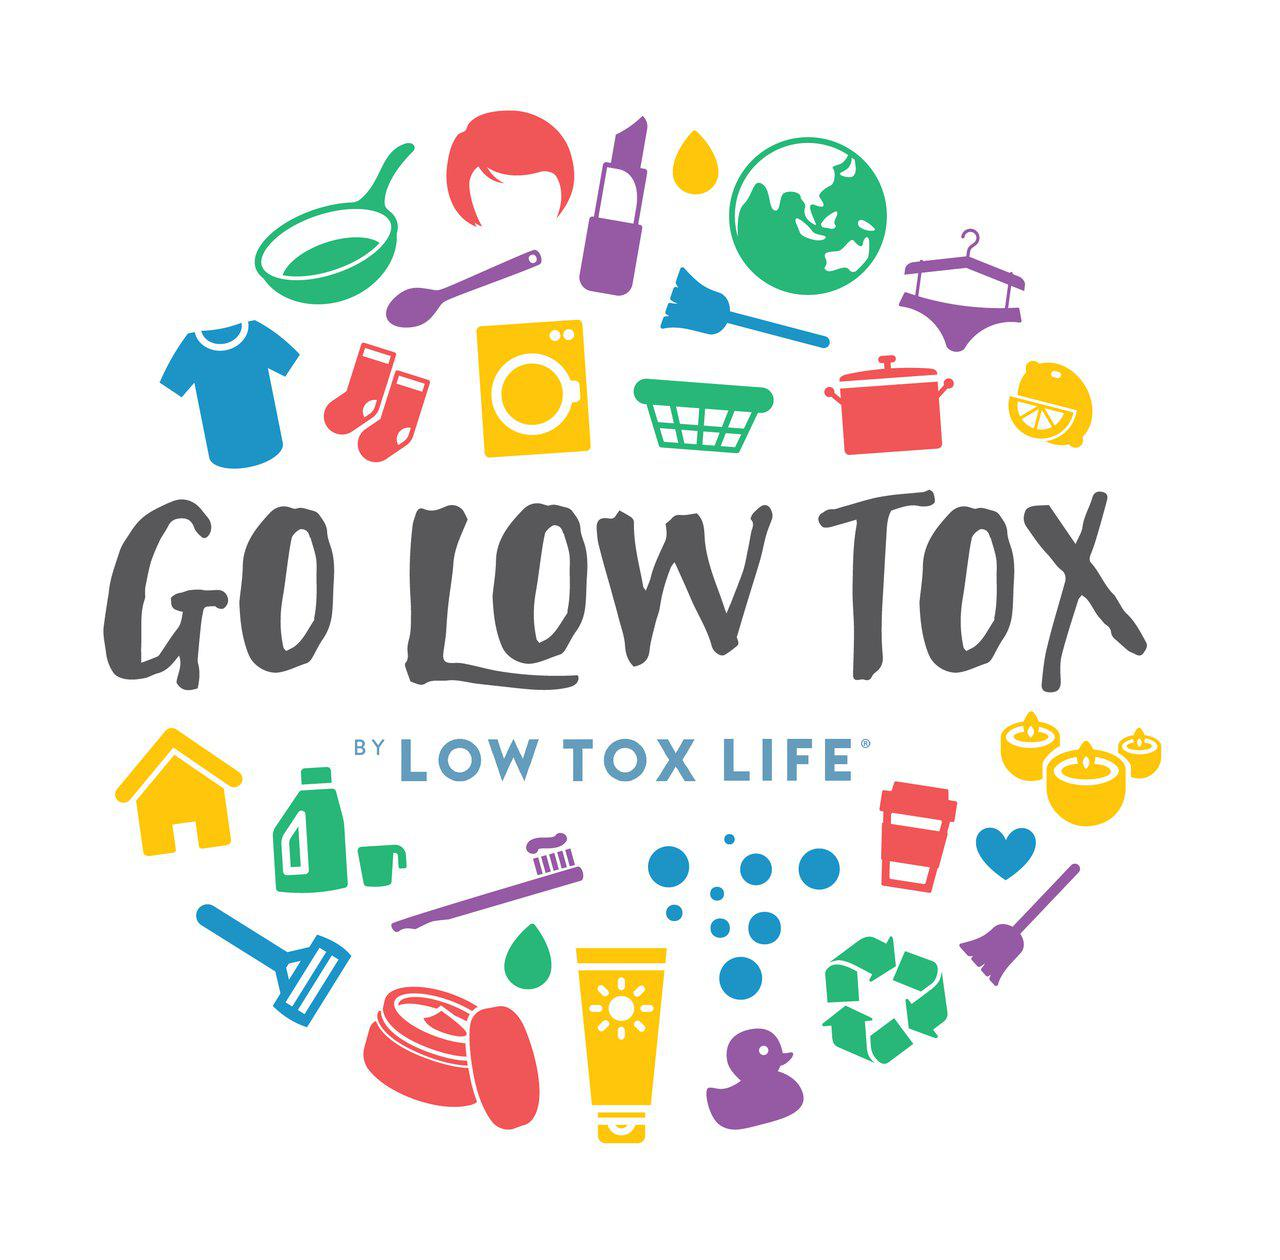 Go Low Tox - Lifer